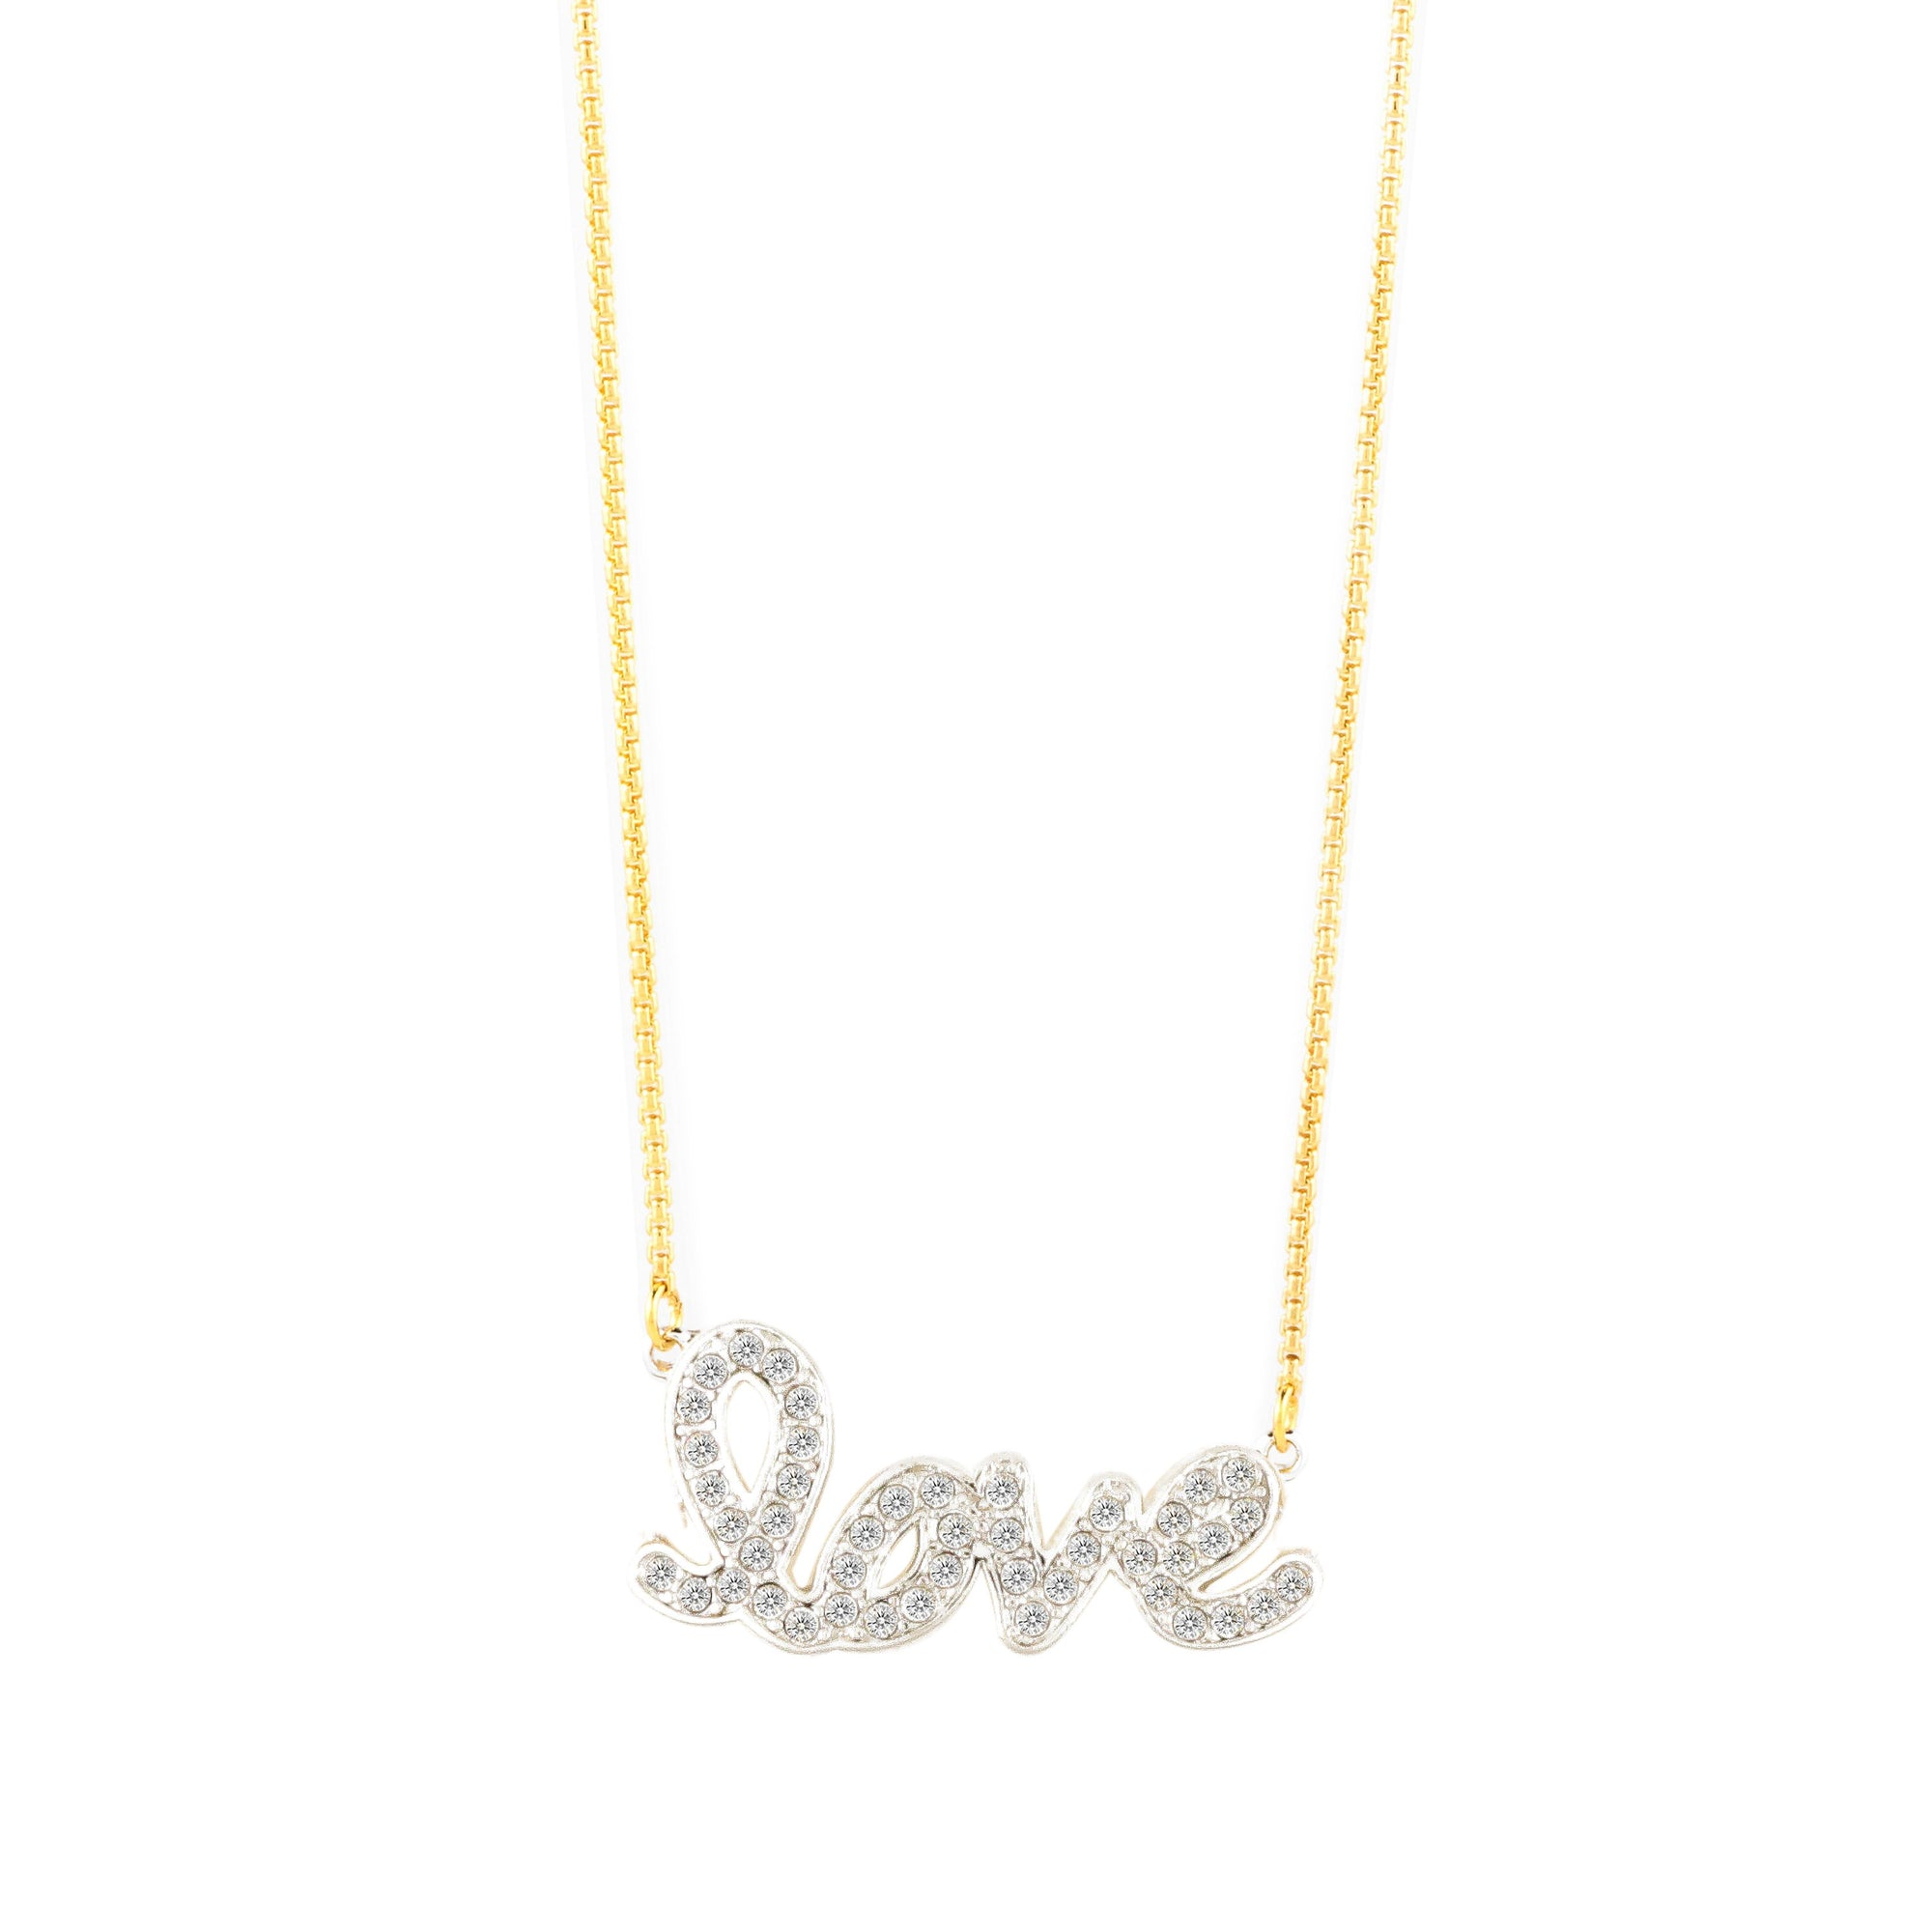 L-O-V-E NECKLACE TWO TONE CRYSTAL